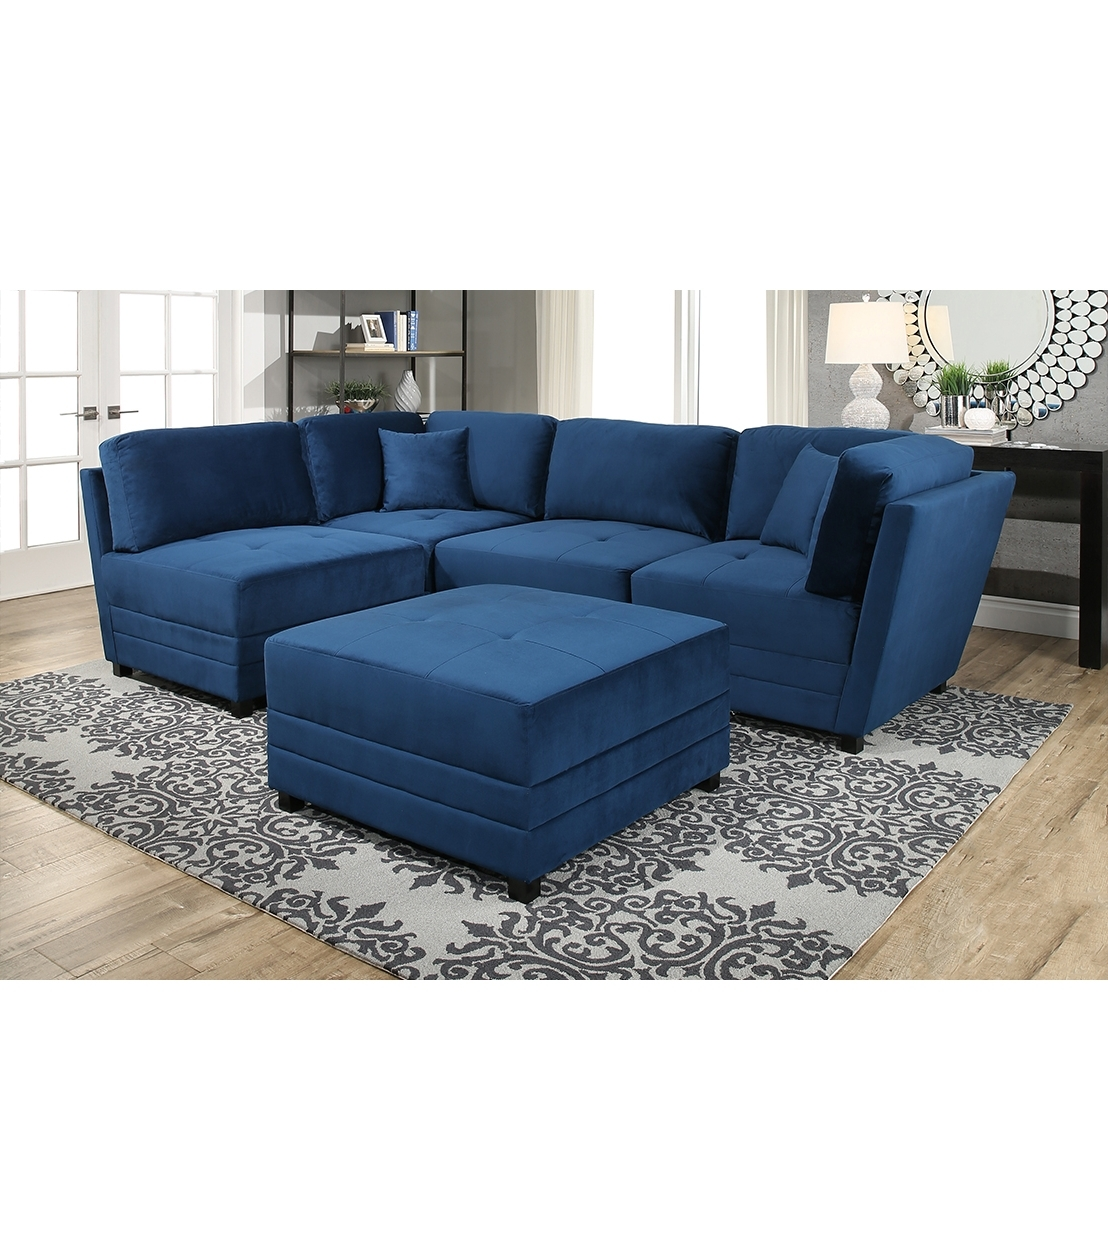 Abbyson Sectional Sofas Intended For Current New Arrivals : Leyla Sectional, Blue (View 12 of 20)